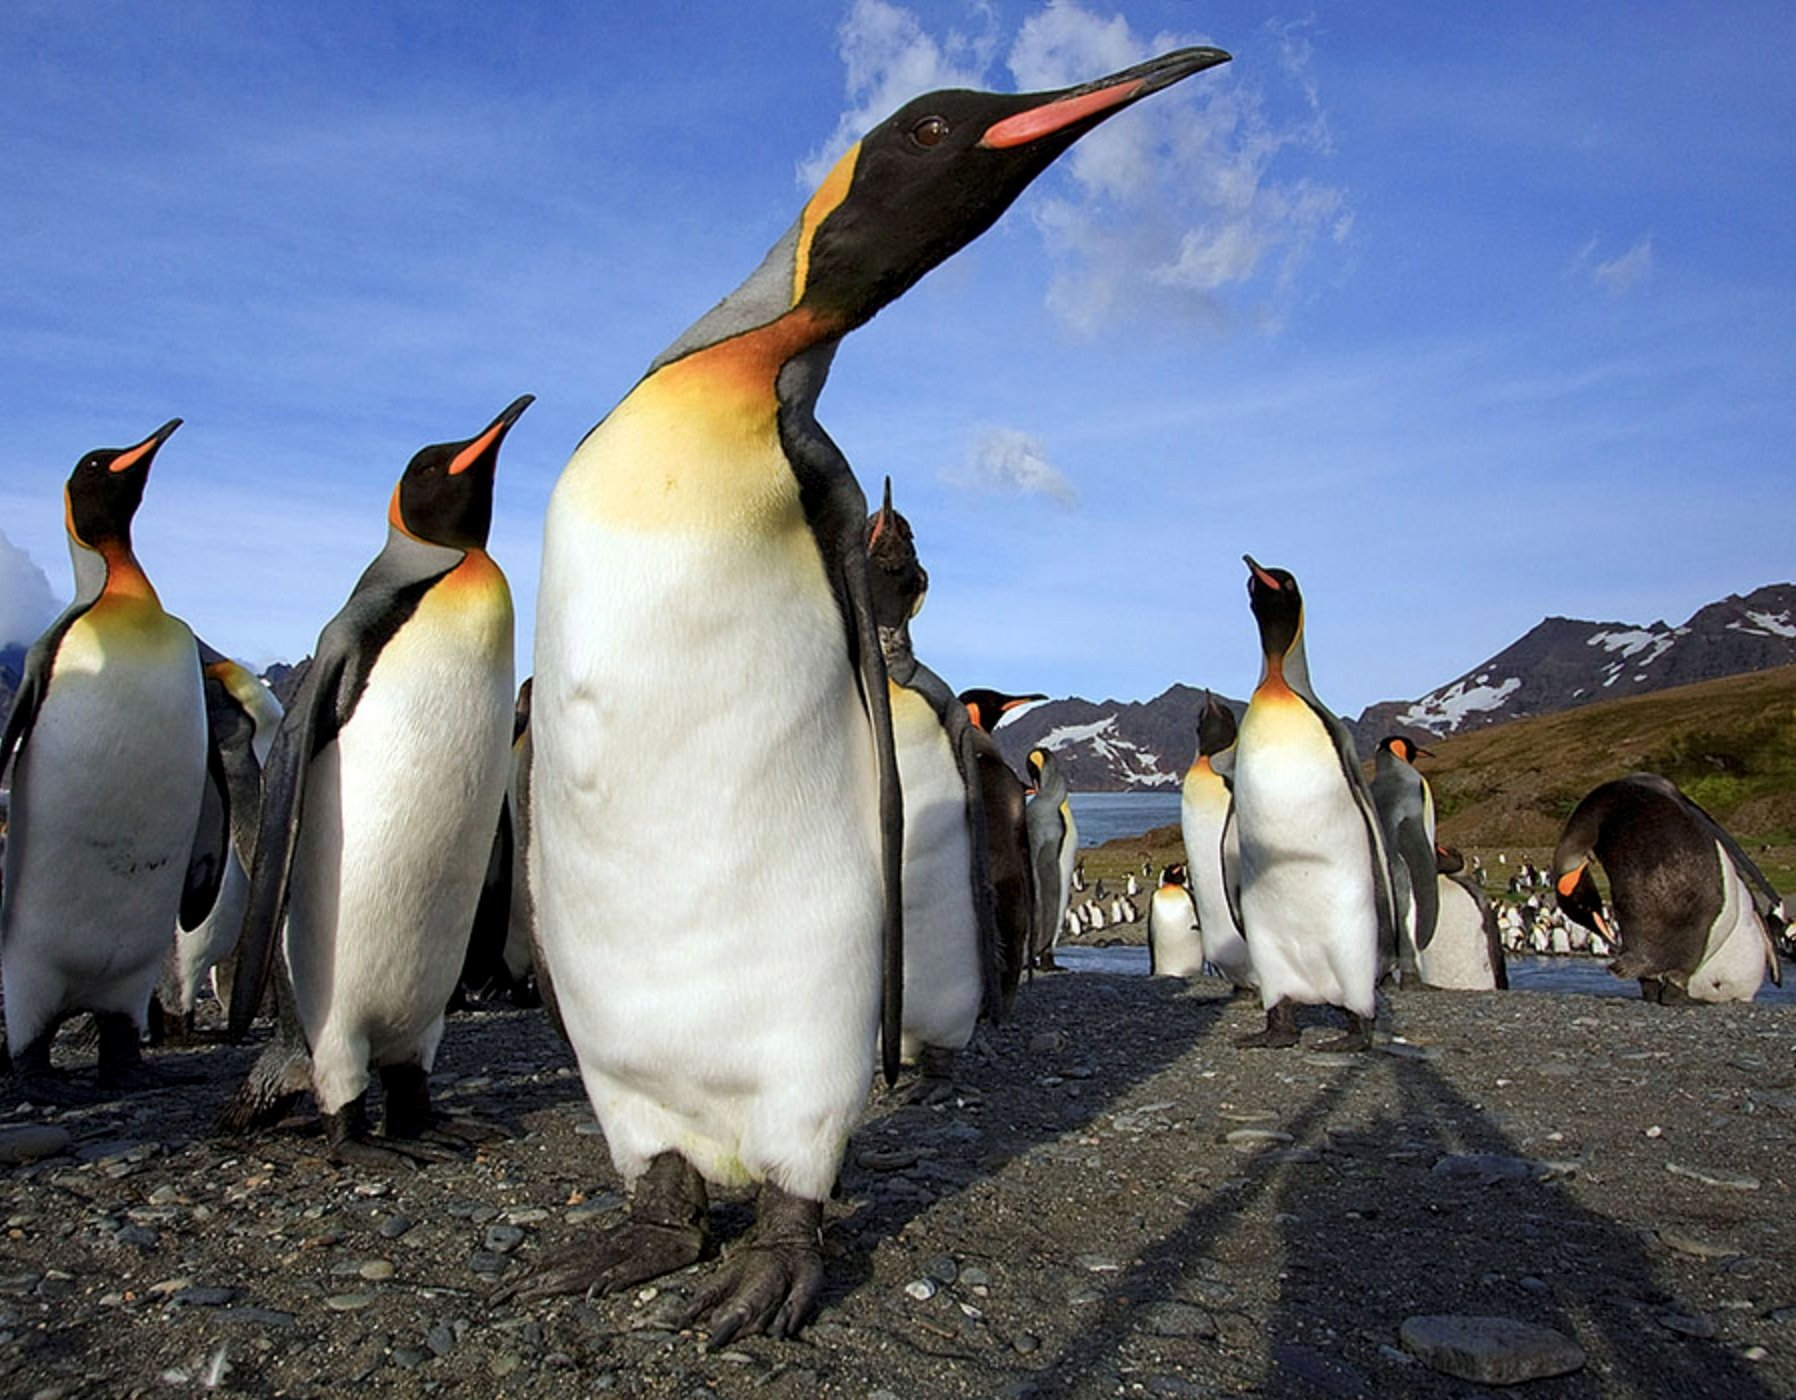 Penguins stand on South Georgia Island in this undated photo. (Photo by Alek Komarnitsky via Reuters)